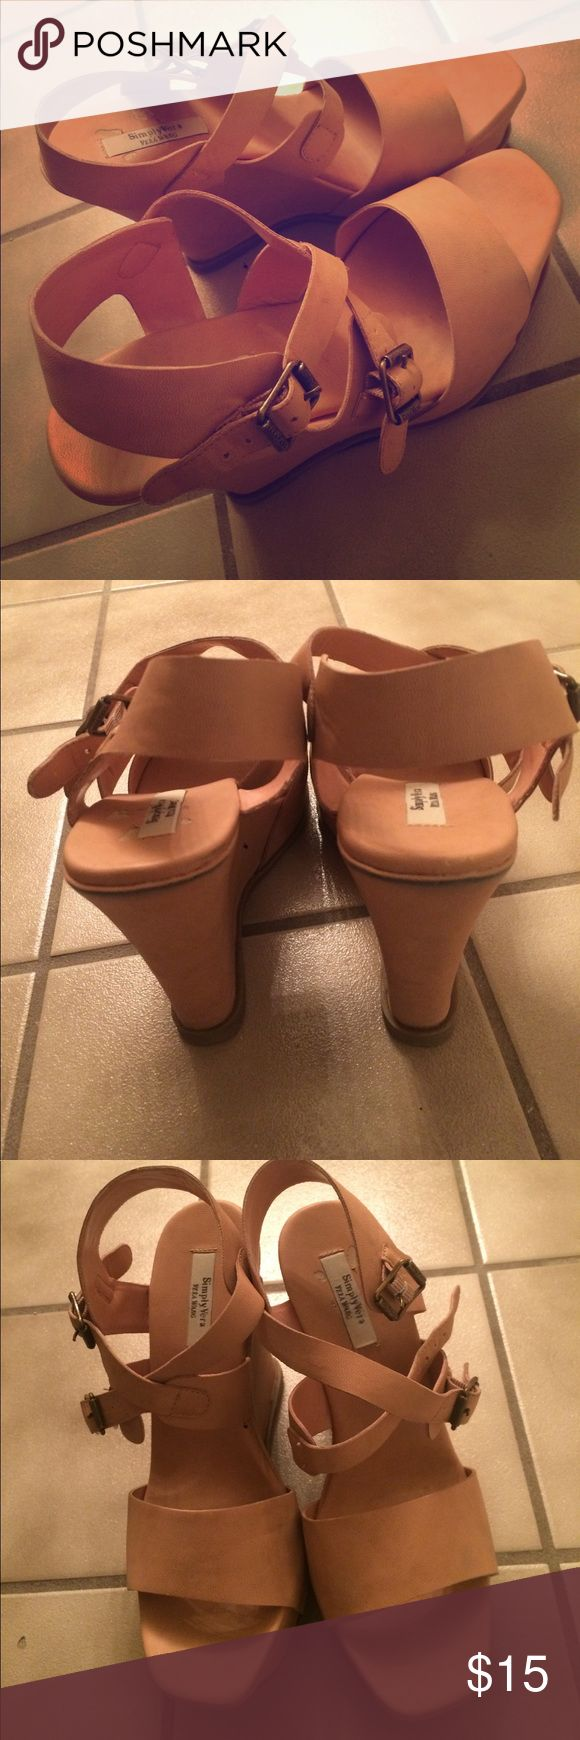 Simply Vera Vera Wang women's nude wedges Simply Vera Vera Wang women's nude wedges in size 8.5 (US). Some wear and mild denim stains on the back (shown in photos), but overall a great tall wedge to dress up an outfit for a night out or wedding. Simply Vera Vera Wang Shoes Wedges